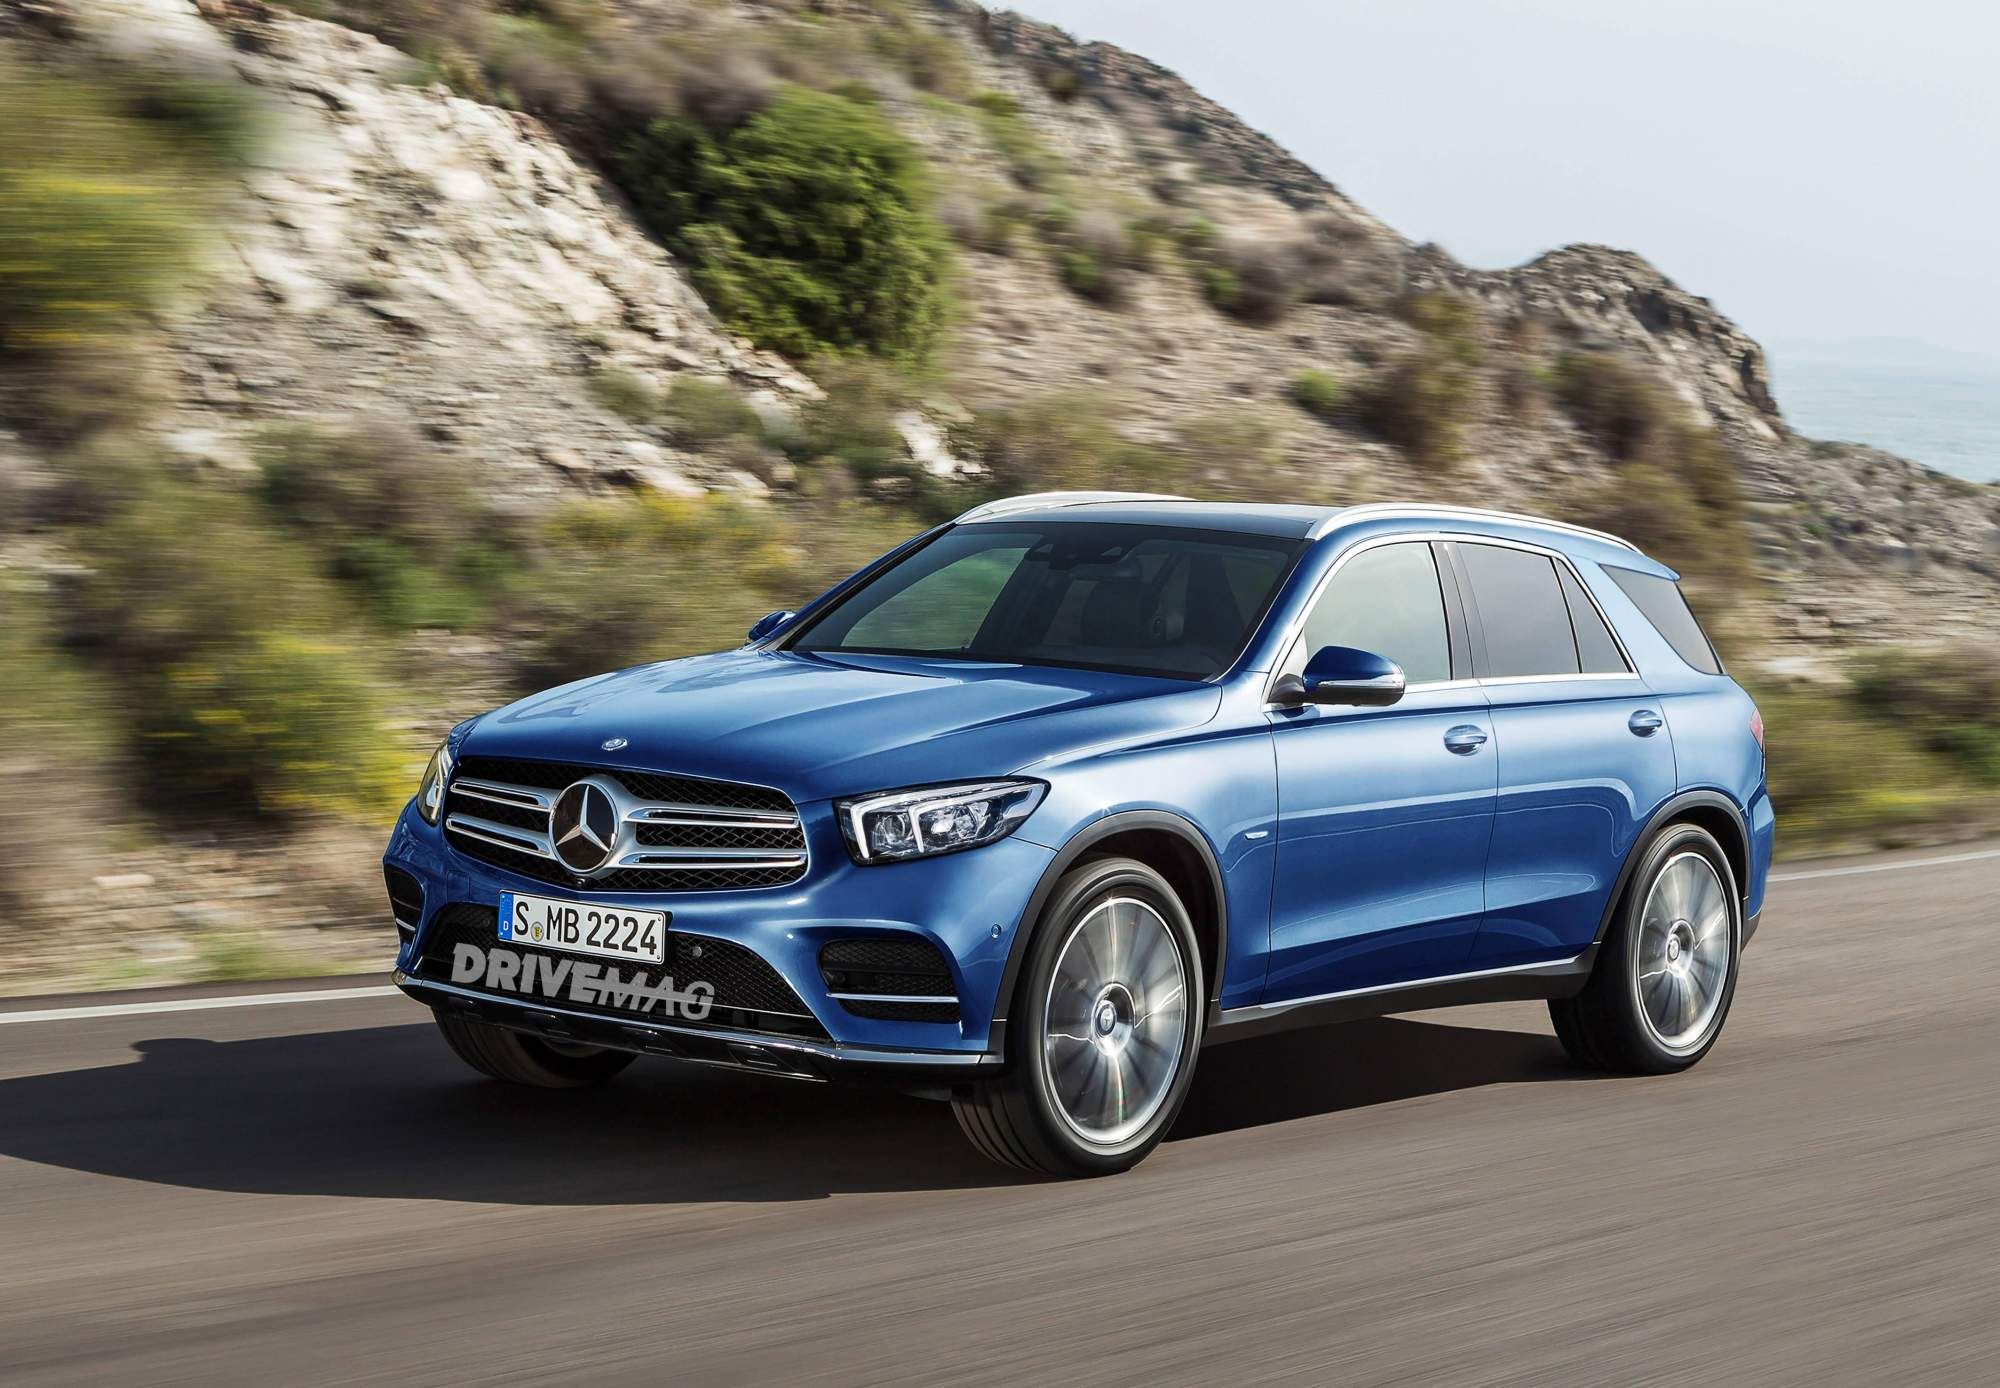 mercedes gle 2018. we take a look at the design of next-generation mercedes-benz g-class and gle mercedes gle 2018